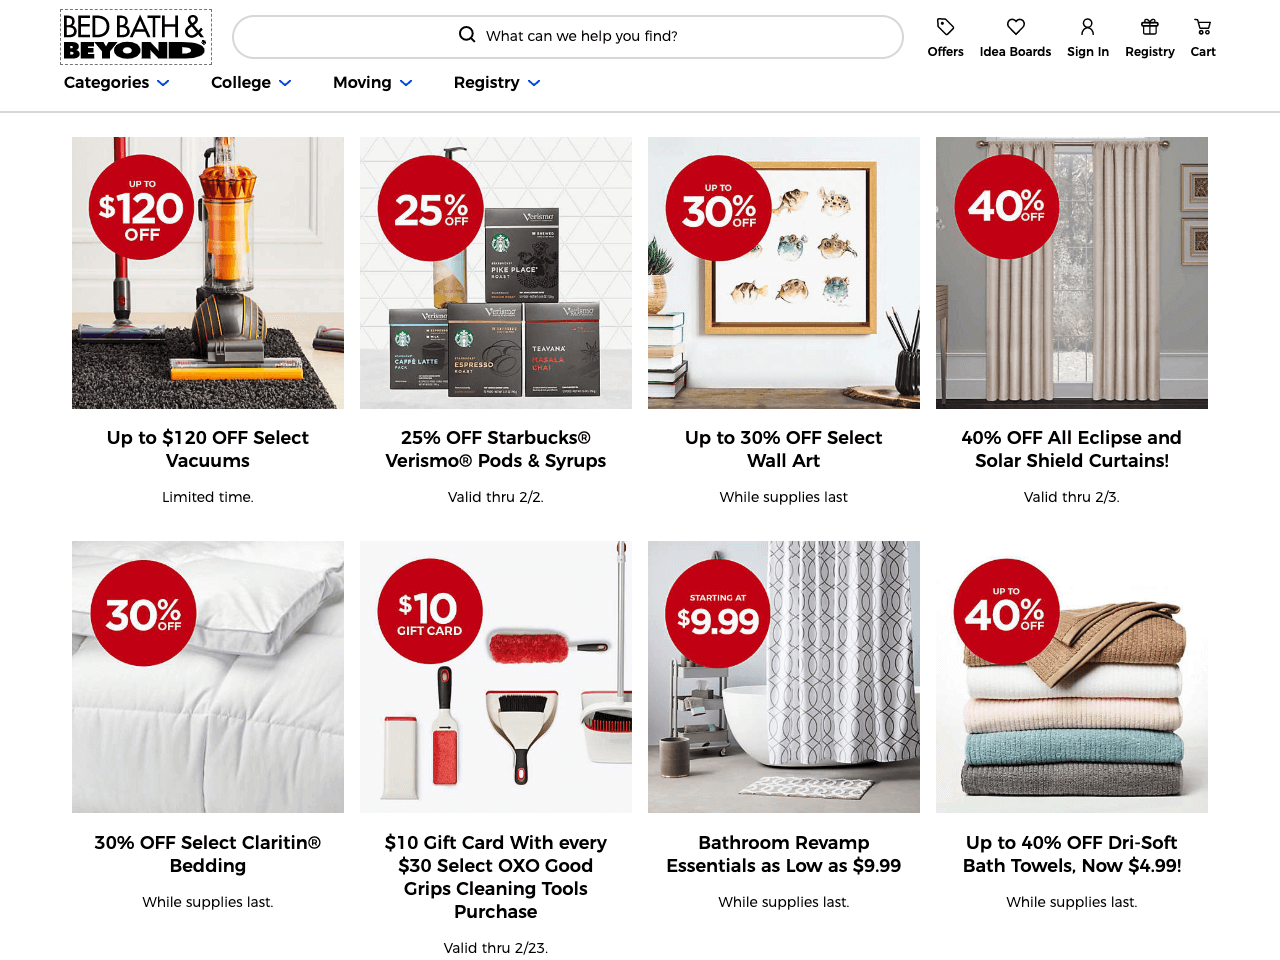 Bed Bath & Beyond showcases its limited time deals sorted into categories